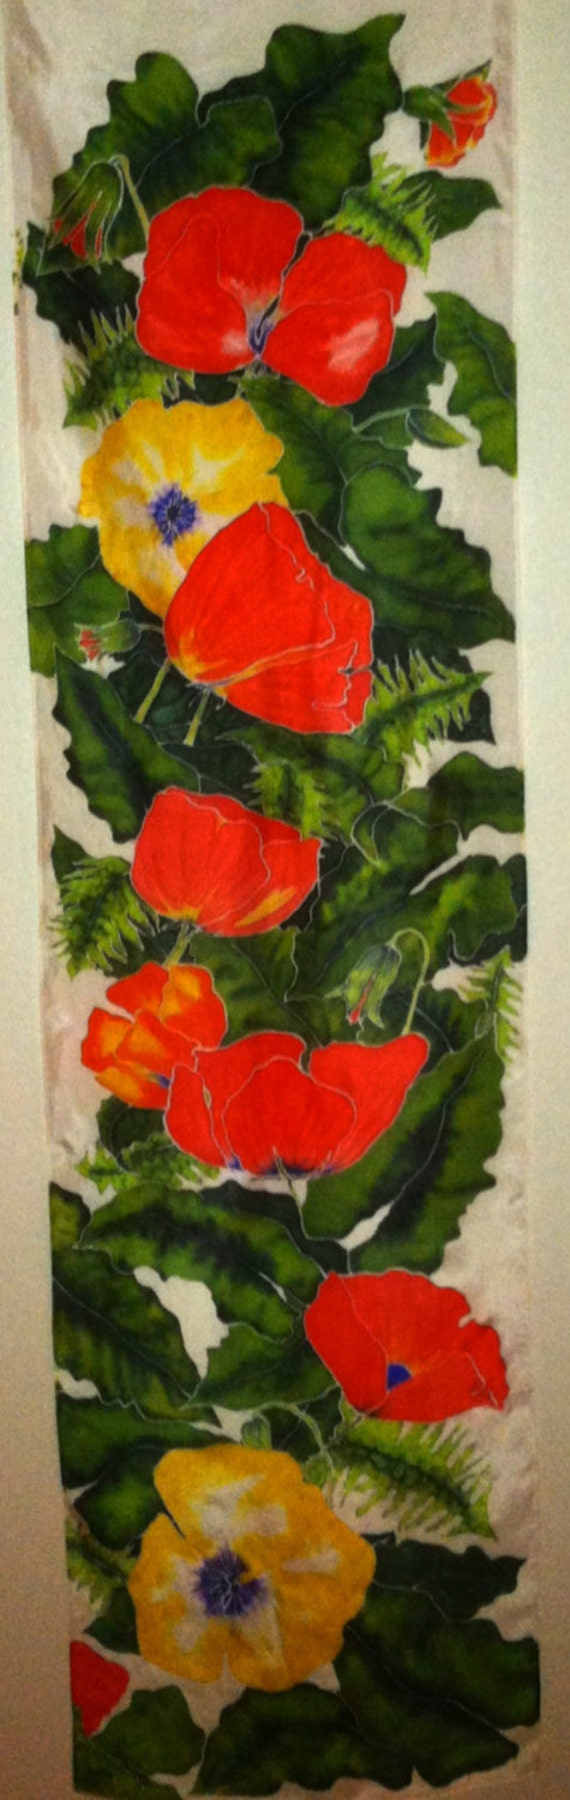 CRIMSON ABOUNDS - Hand Painted Silk Wall Hanging